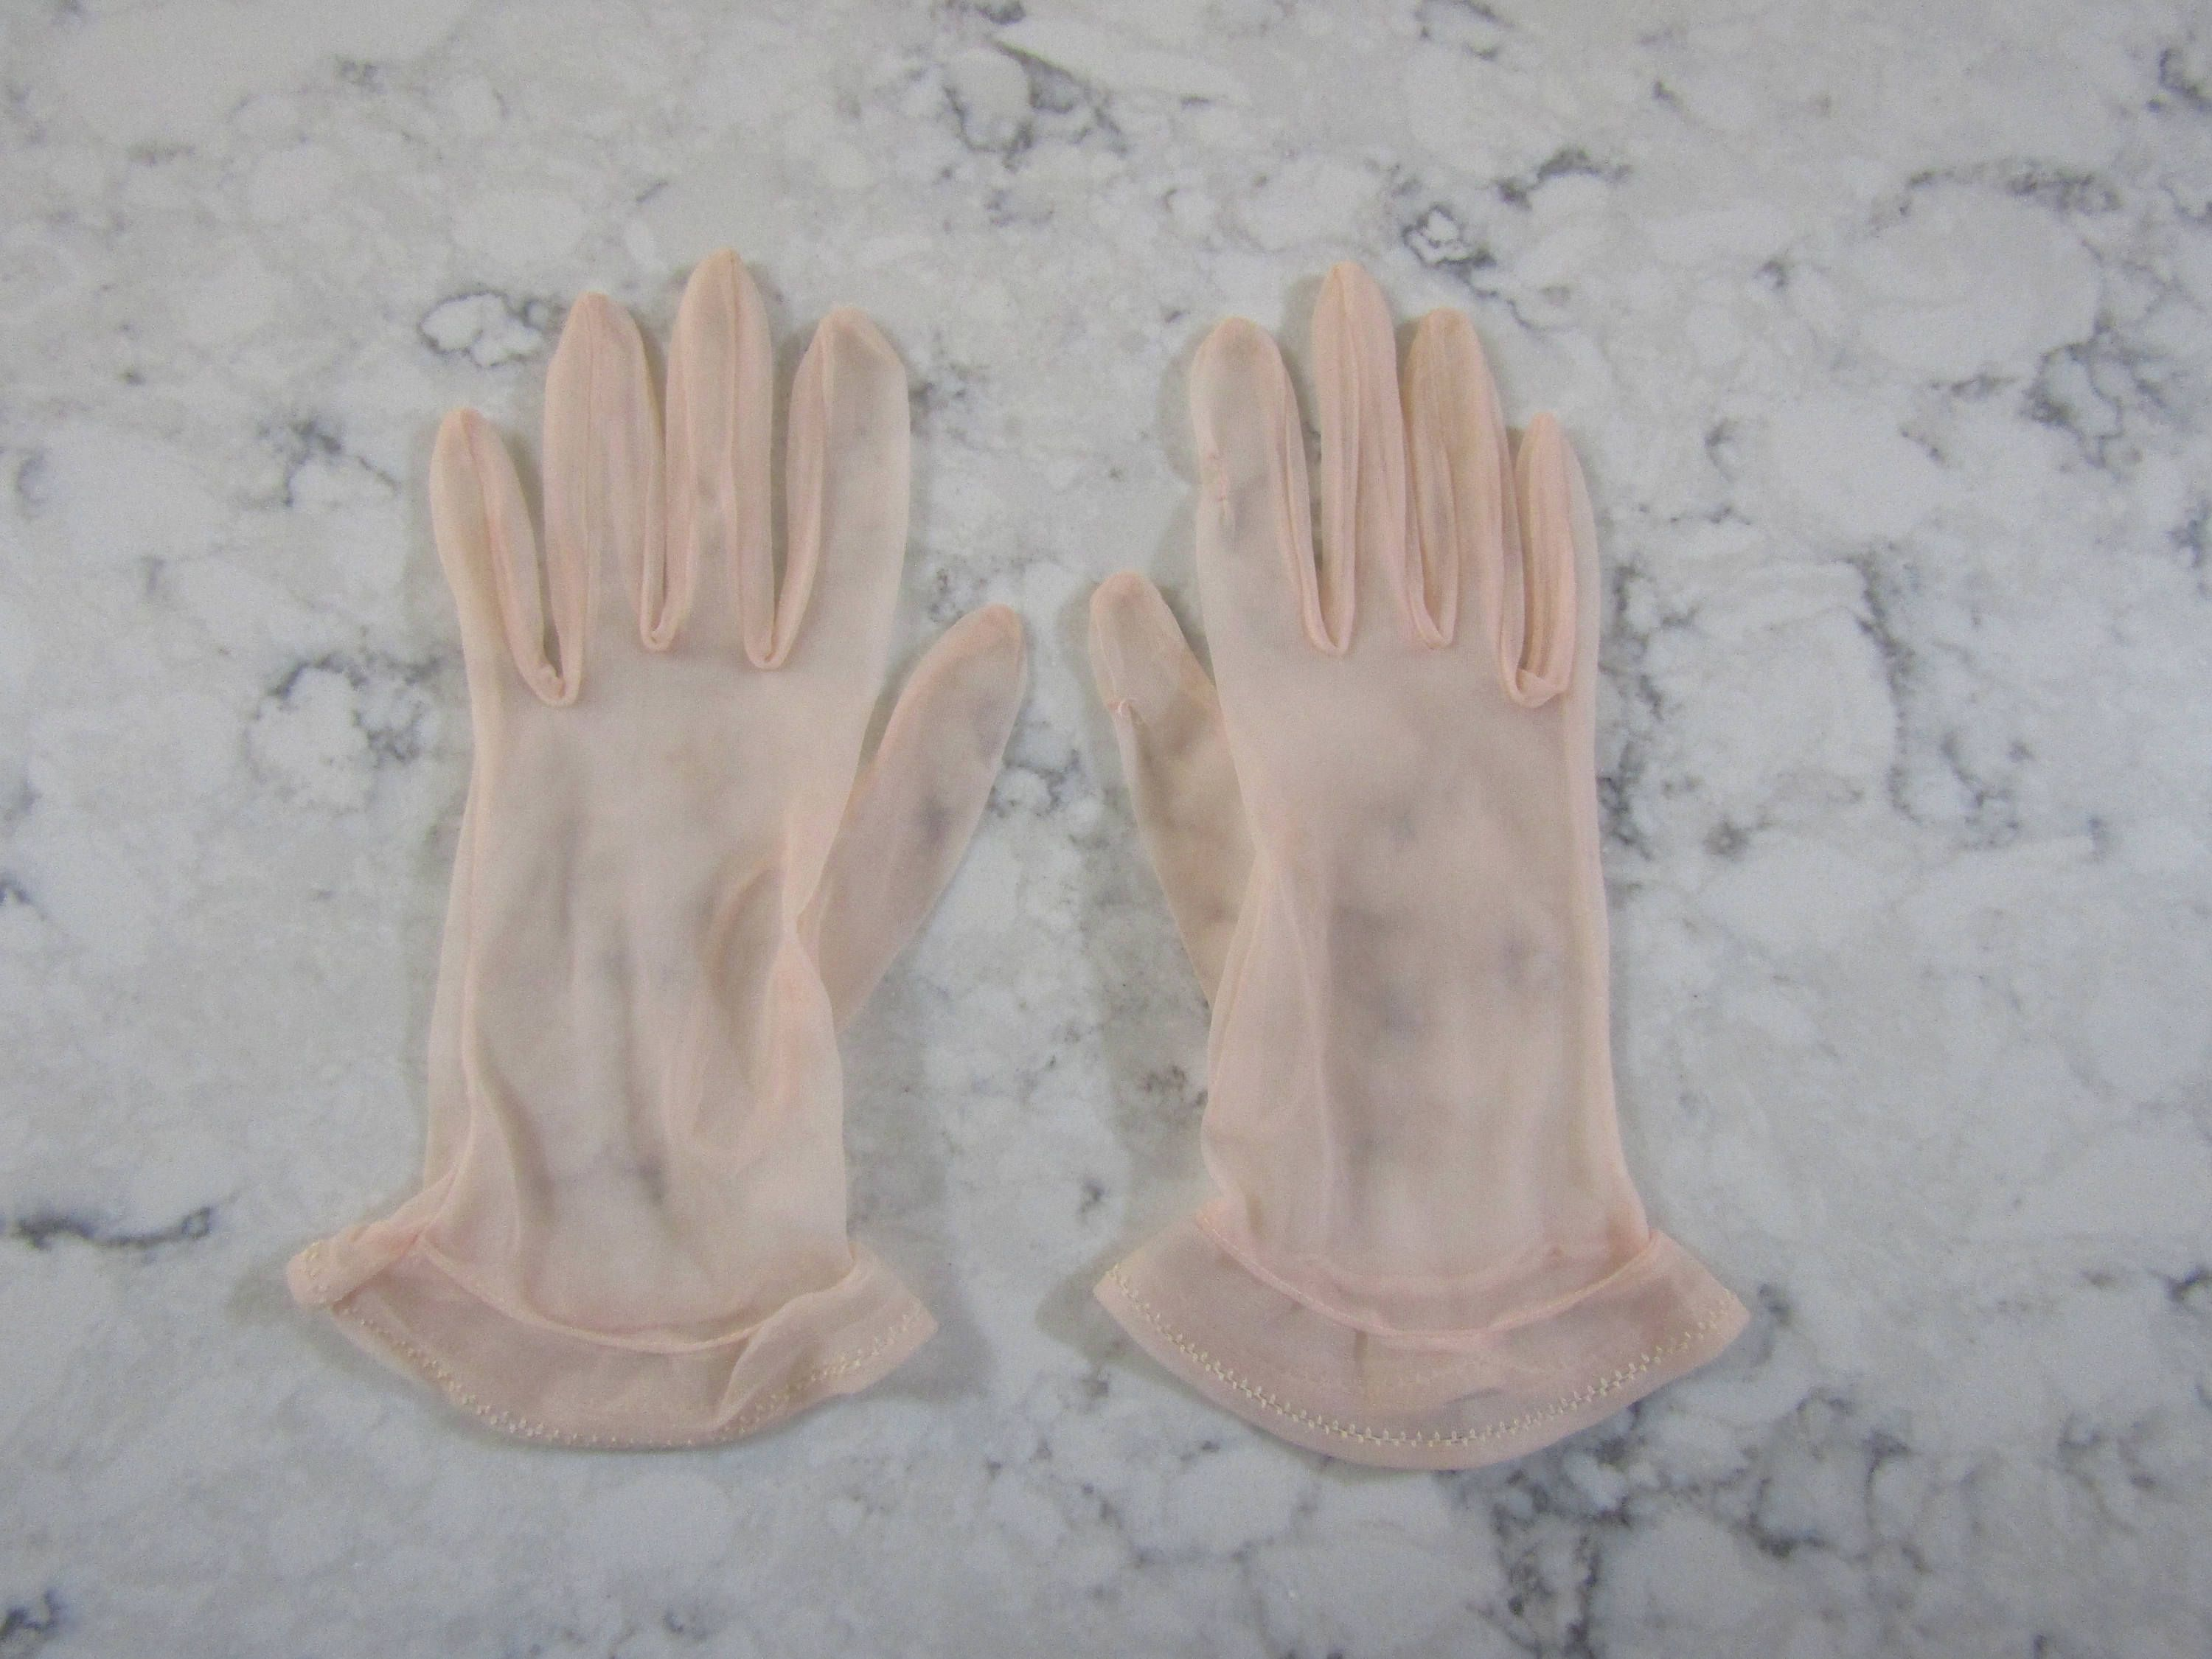 Vintage ladies leather opera gloves - Vintage 1950 S Sheer Pink Chiffon Wrist Length Gloves 9 Long Size 6 1 2 To 7 Glove Auction 1533